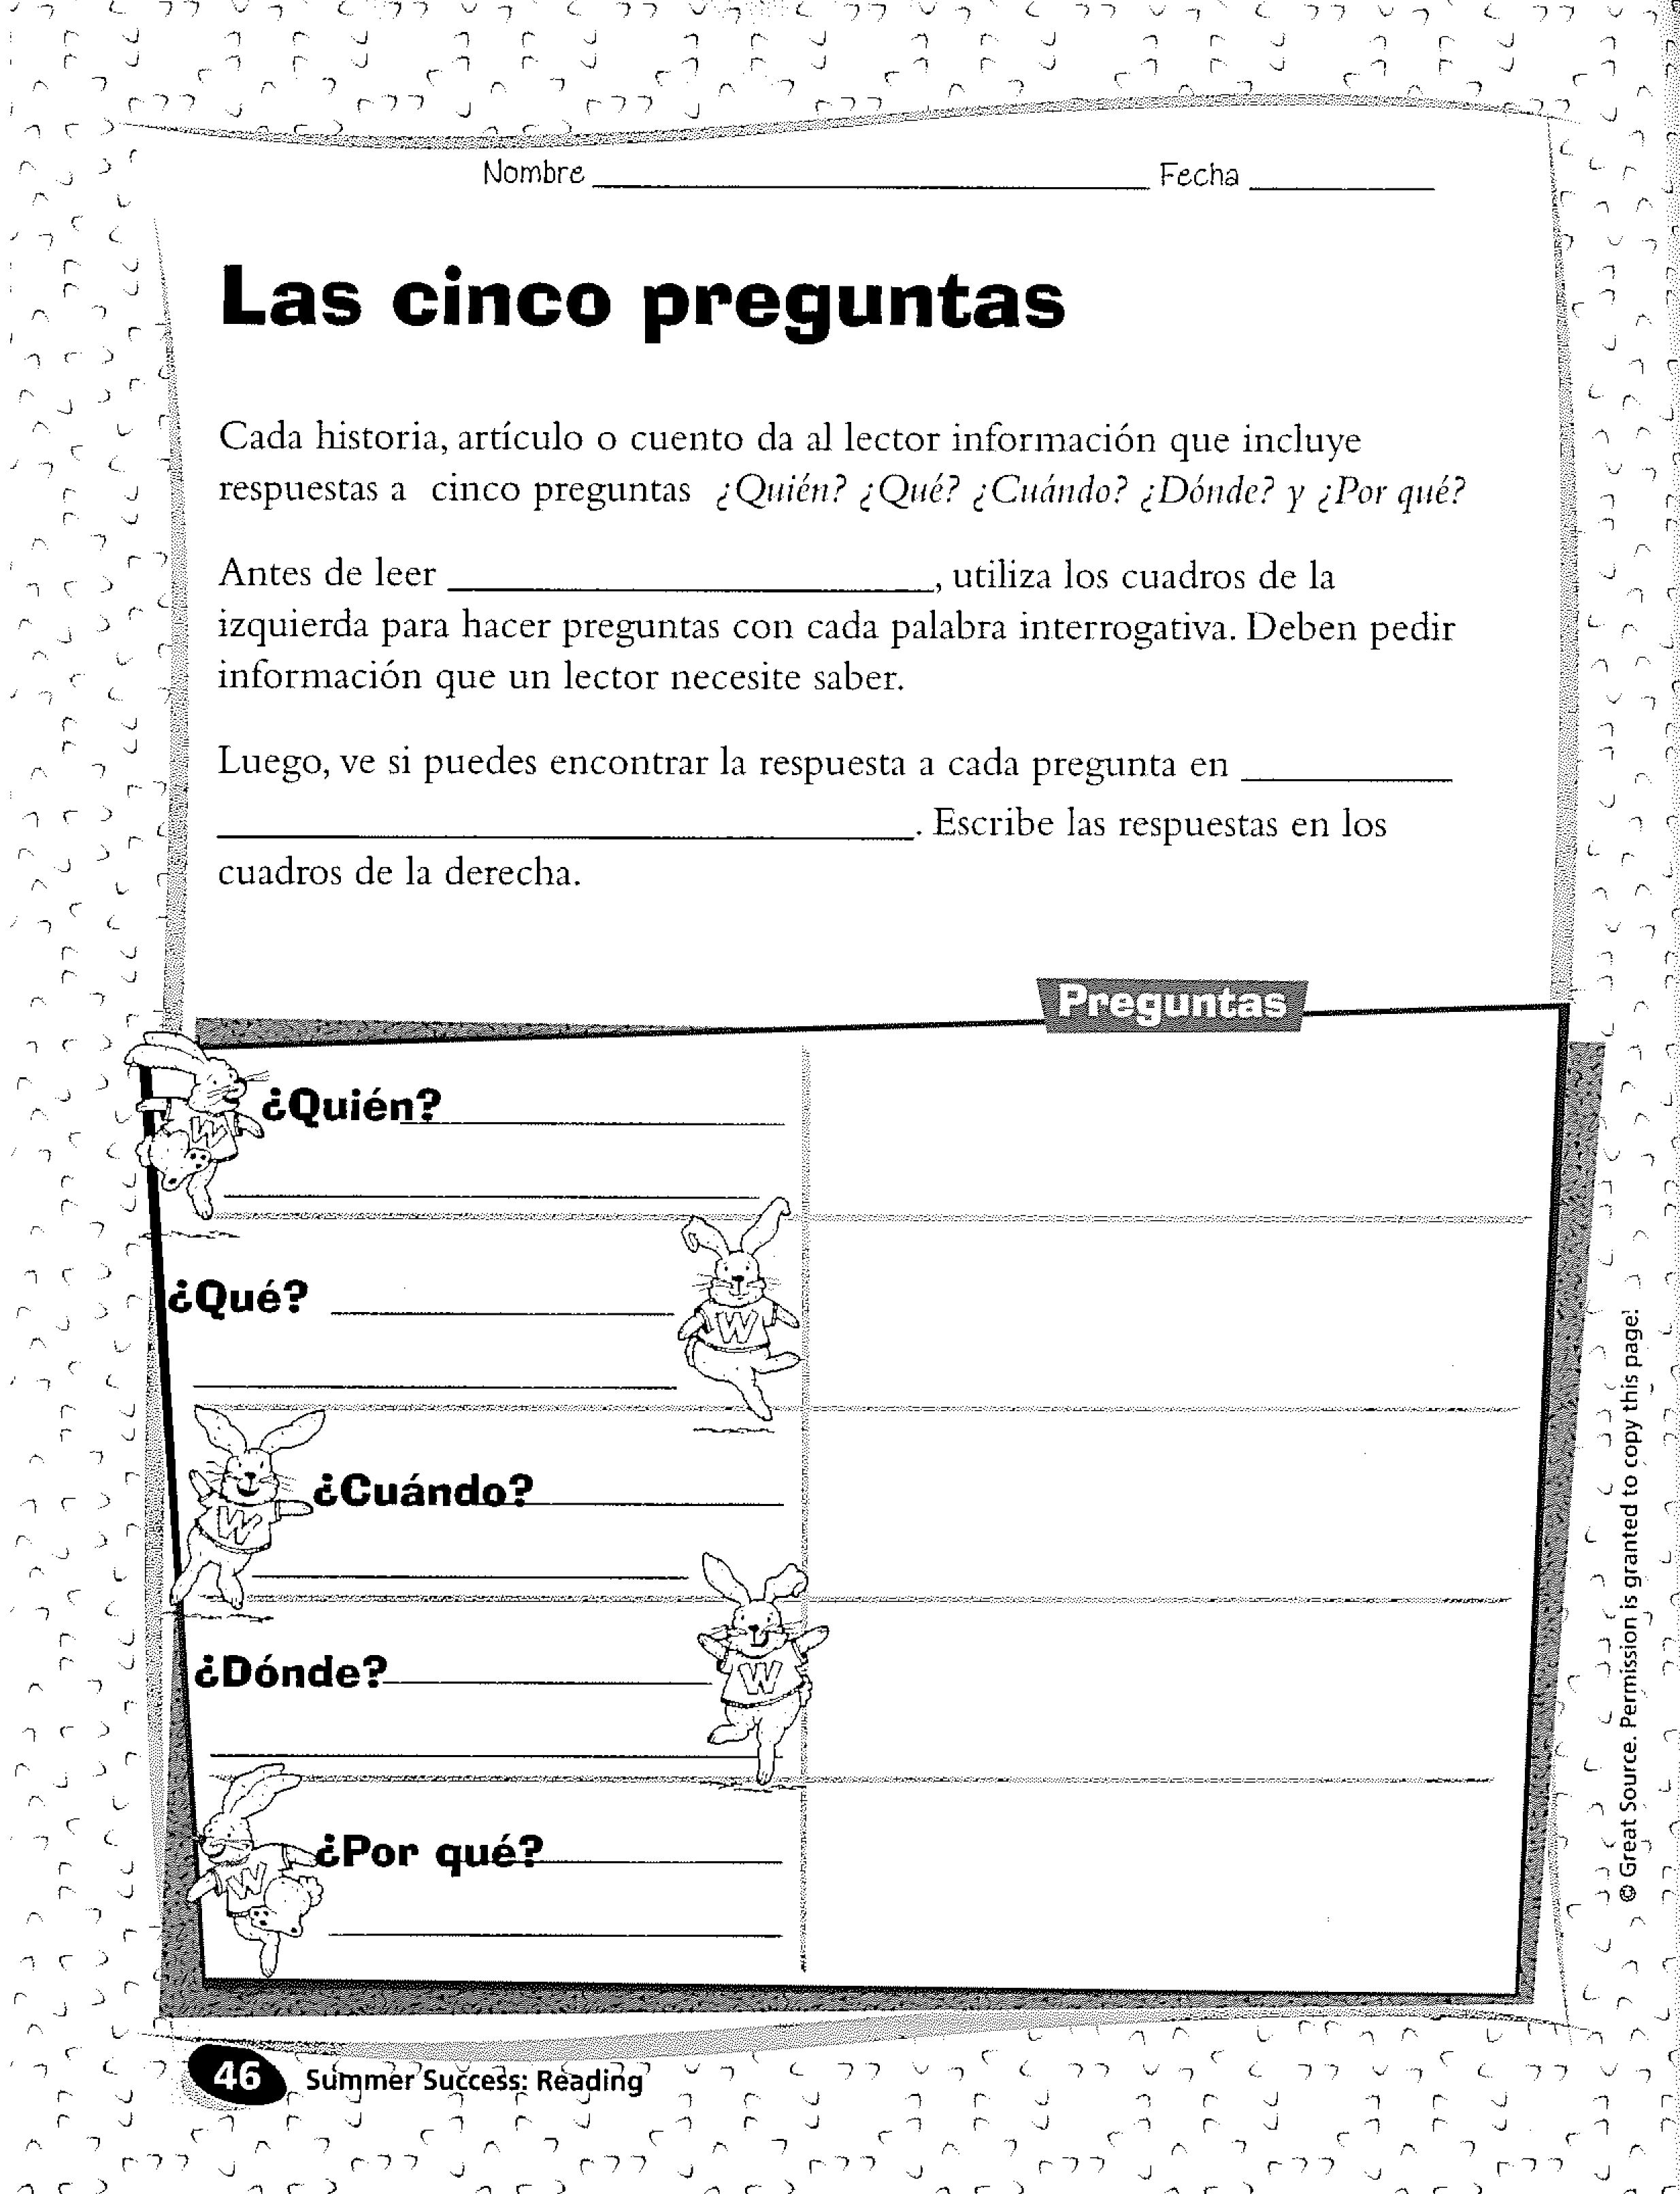 Spanish Activity Making Predictions Grades 3 6 Download Kindergarten Worksheets Sight Words 1st Grade Writing Worksheets Kindergarten Reading Worksheets